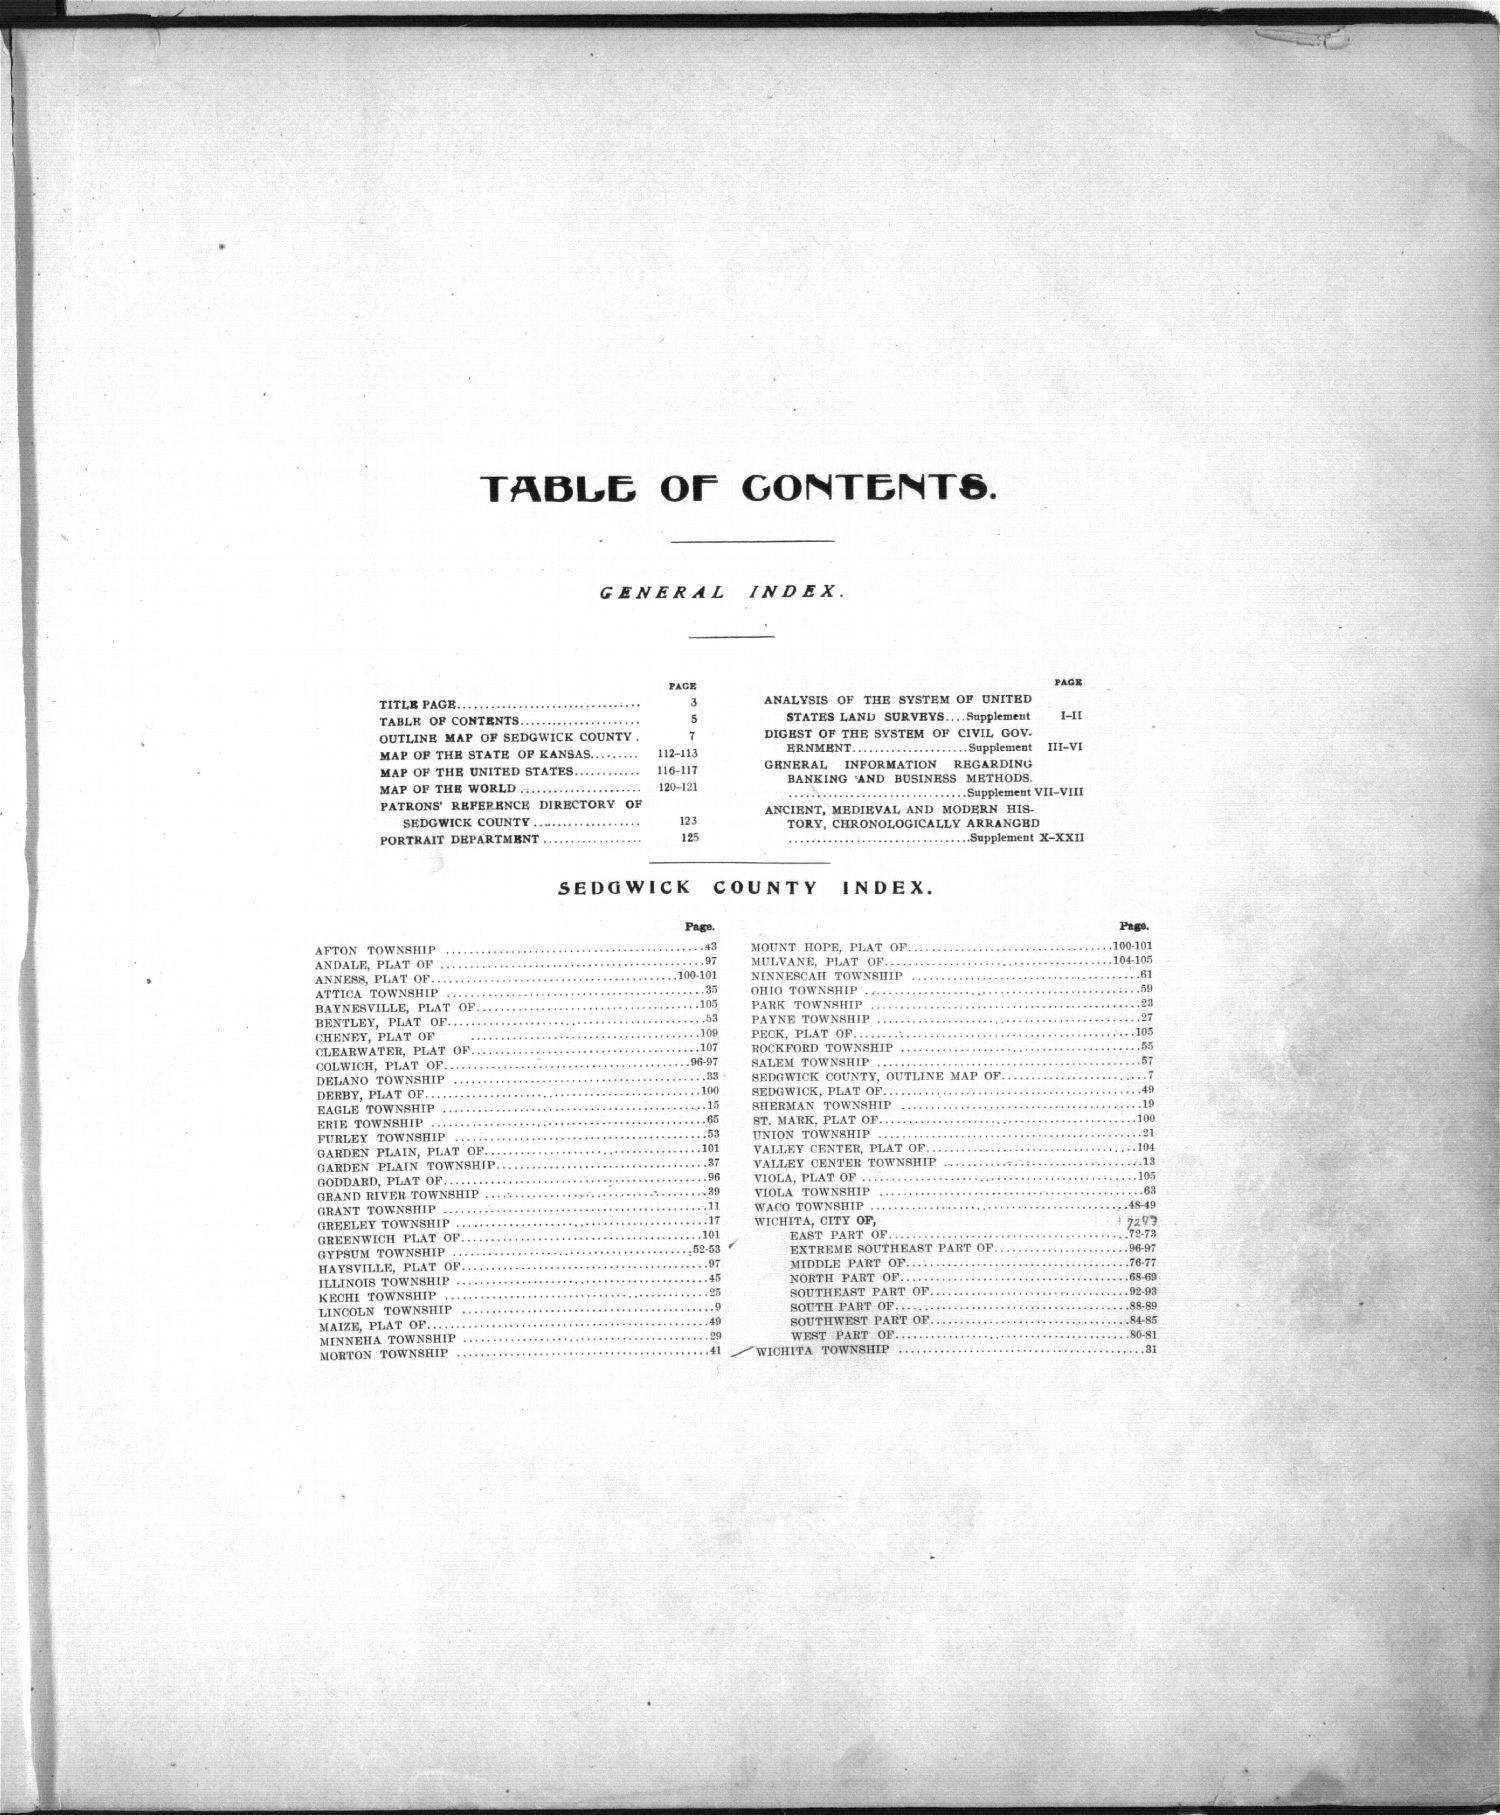 Standard atlas of Sedgwick County, Kansas - Table of Contents